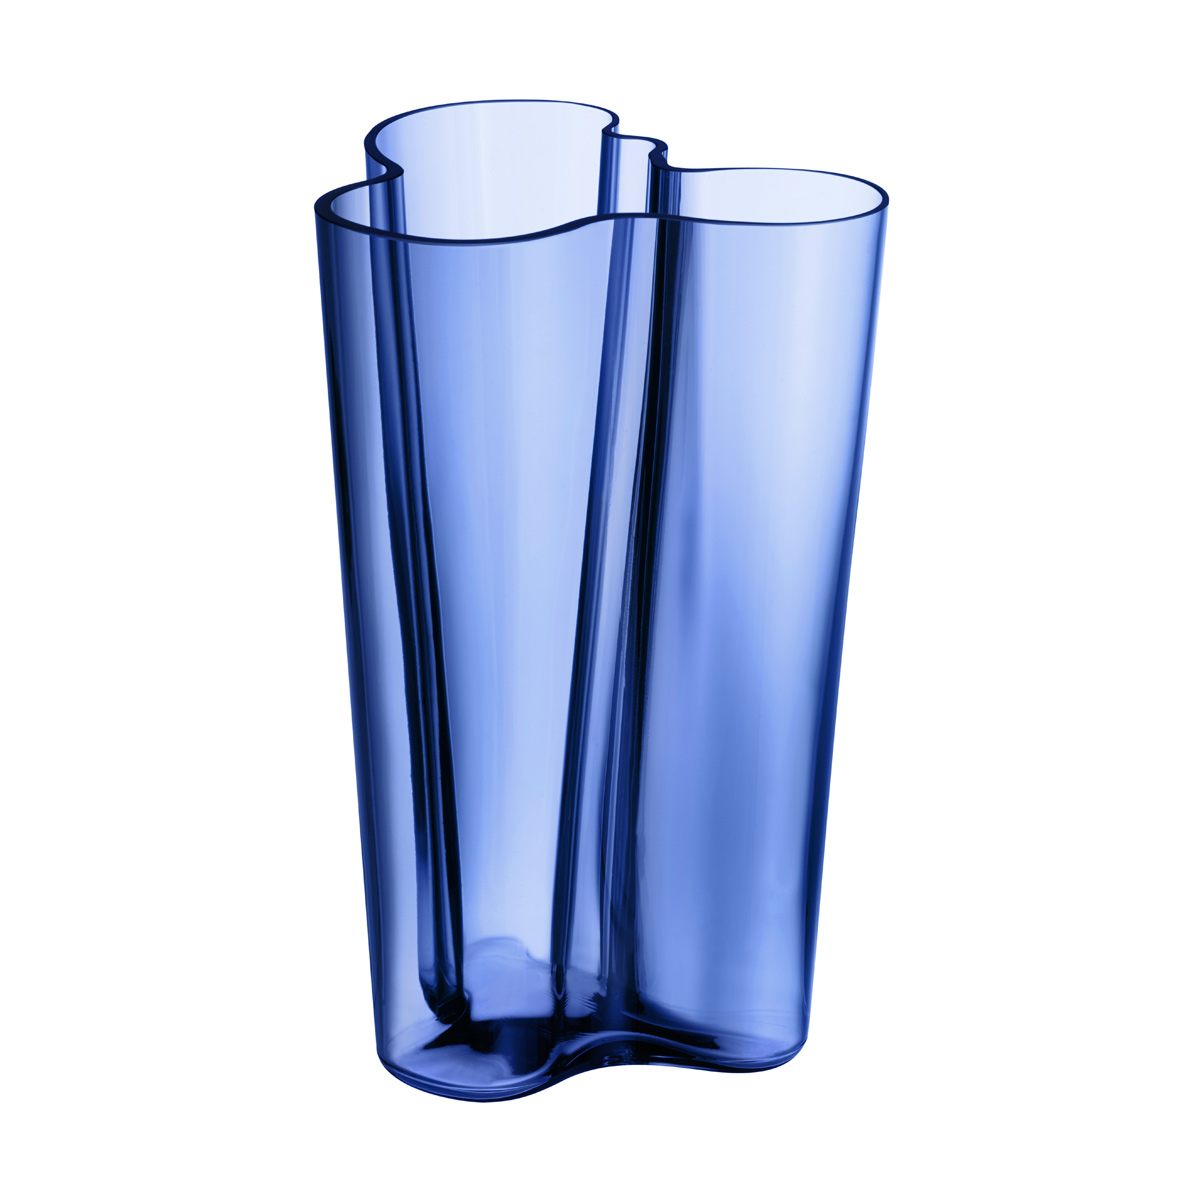 iittala aalto finlandia ultramarine 39 finland 100 39 vase 10 finland 100th anniversary. Black Bedroom Furniture Sets. Home Design Ideas